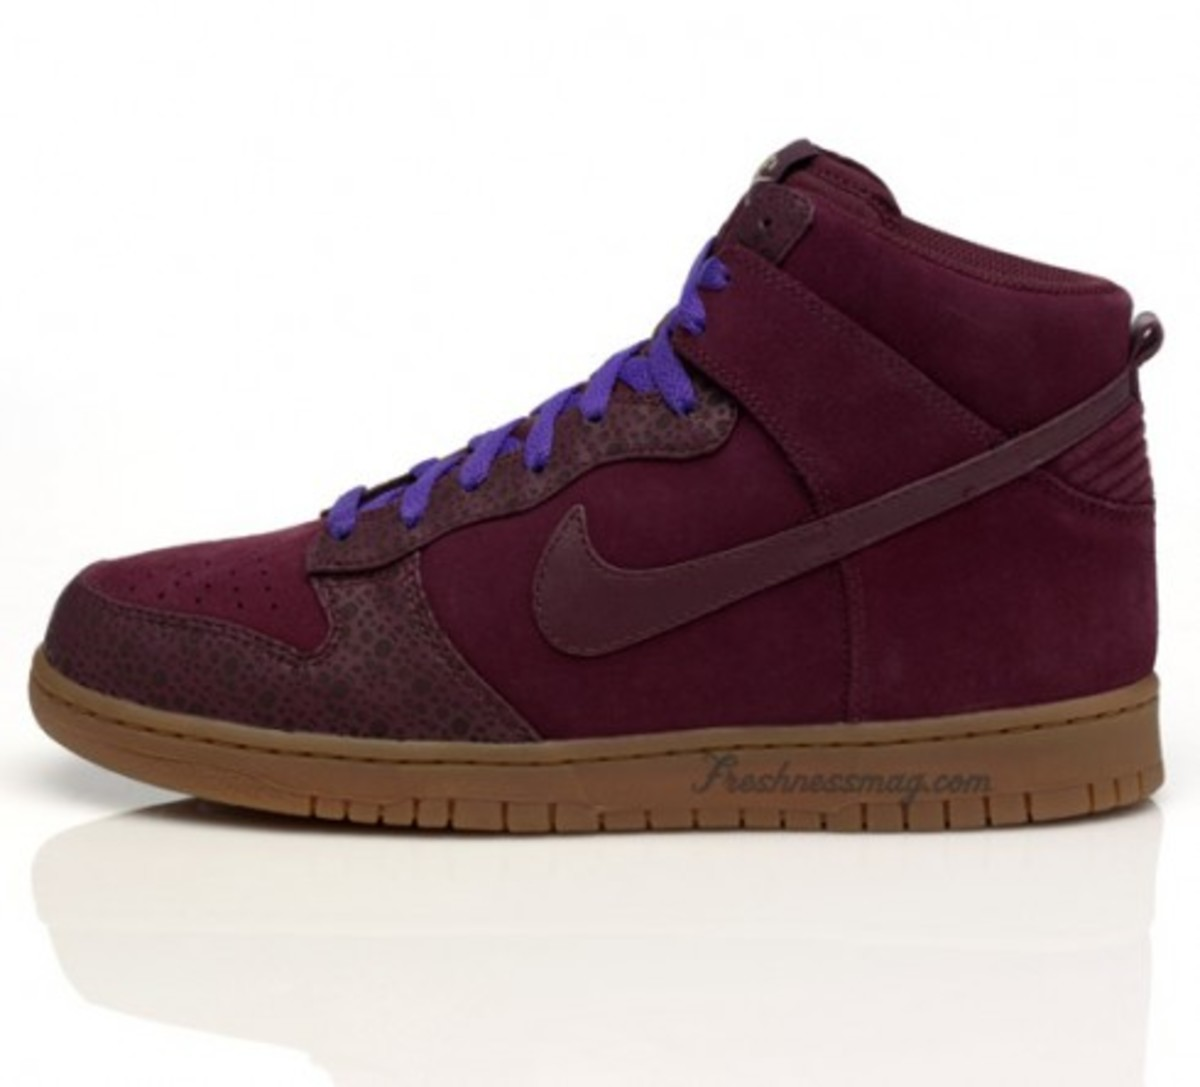 Nike Sportswear - Dunk Safari Pack - 5